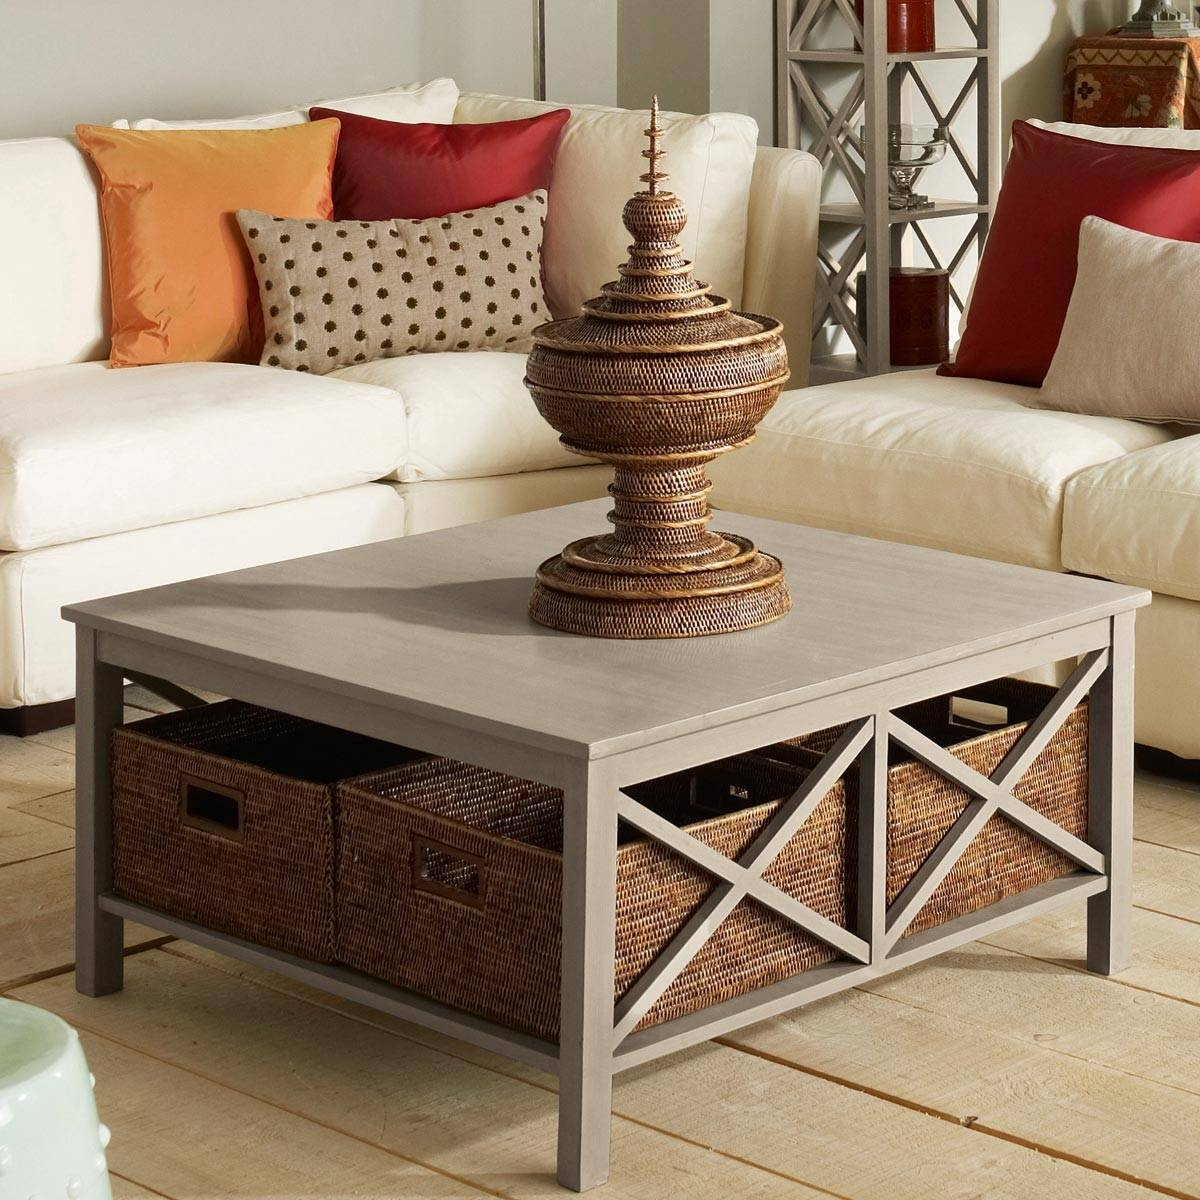 Square Coffee Table With Storage | Coffee Tables for Square Coffee Tables With Storages (Image 26 of 30)